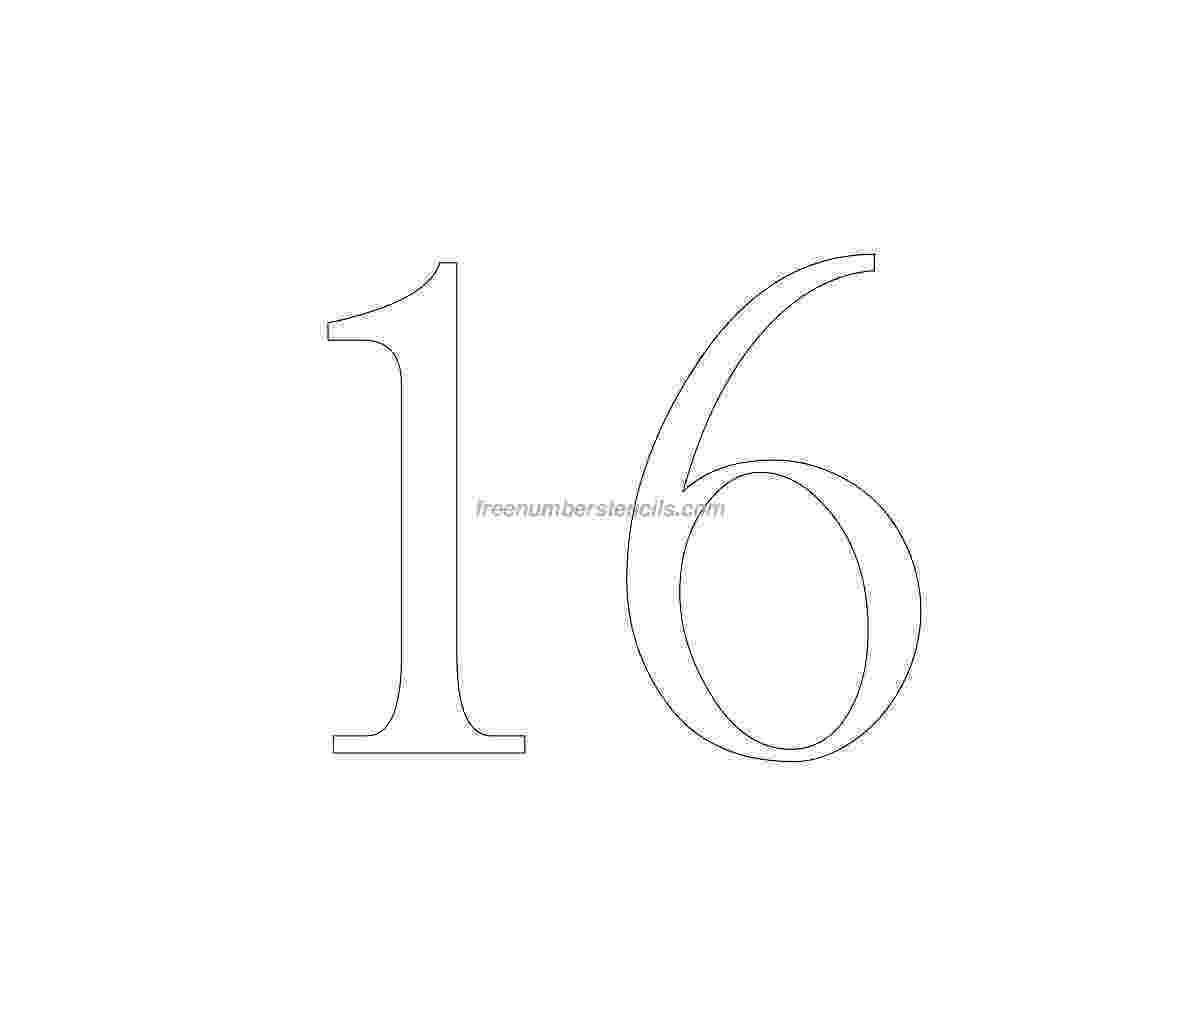 number 16 template number 16 template pictures to pin on pinterest pinsdaddy template number 16